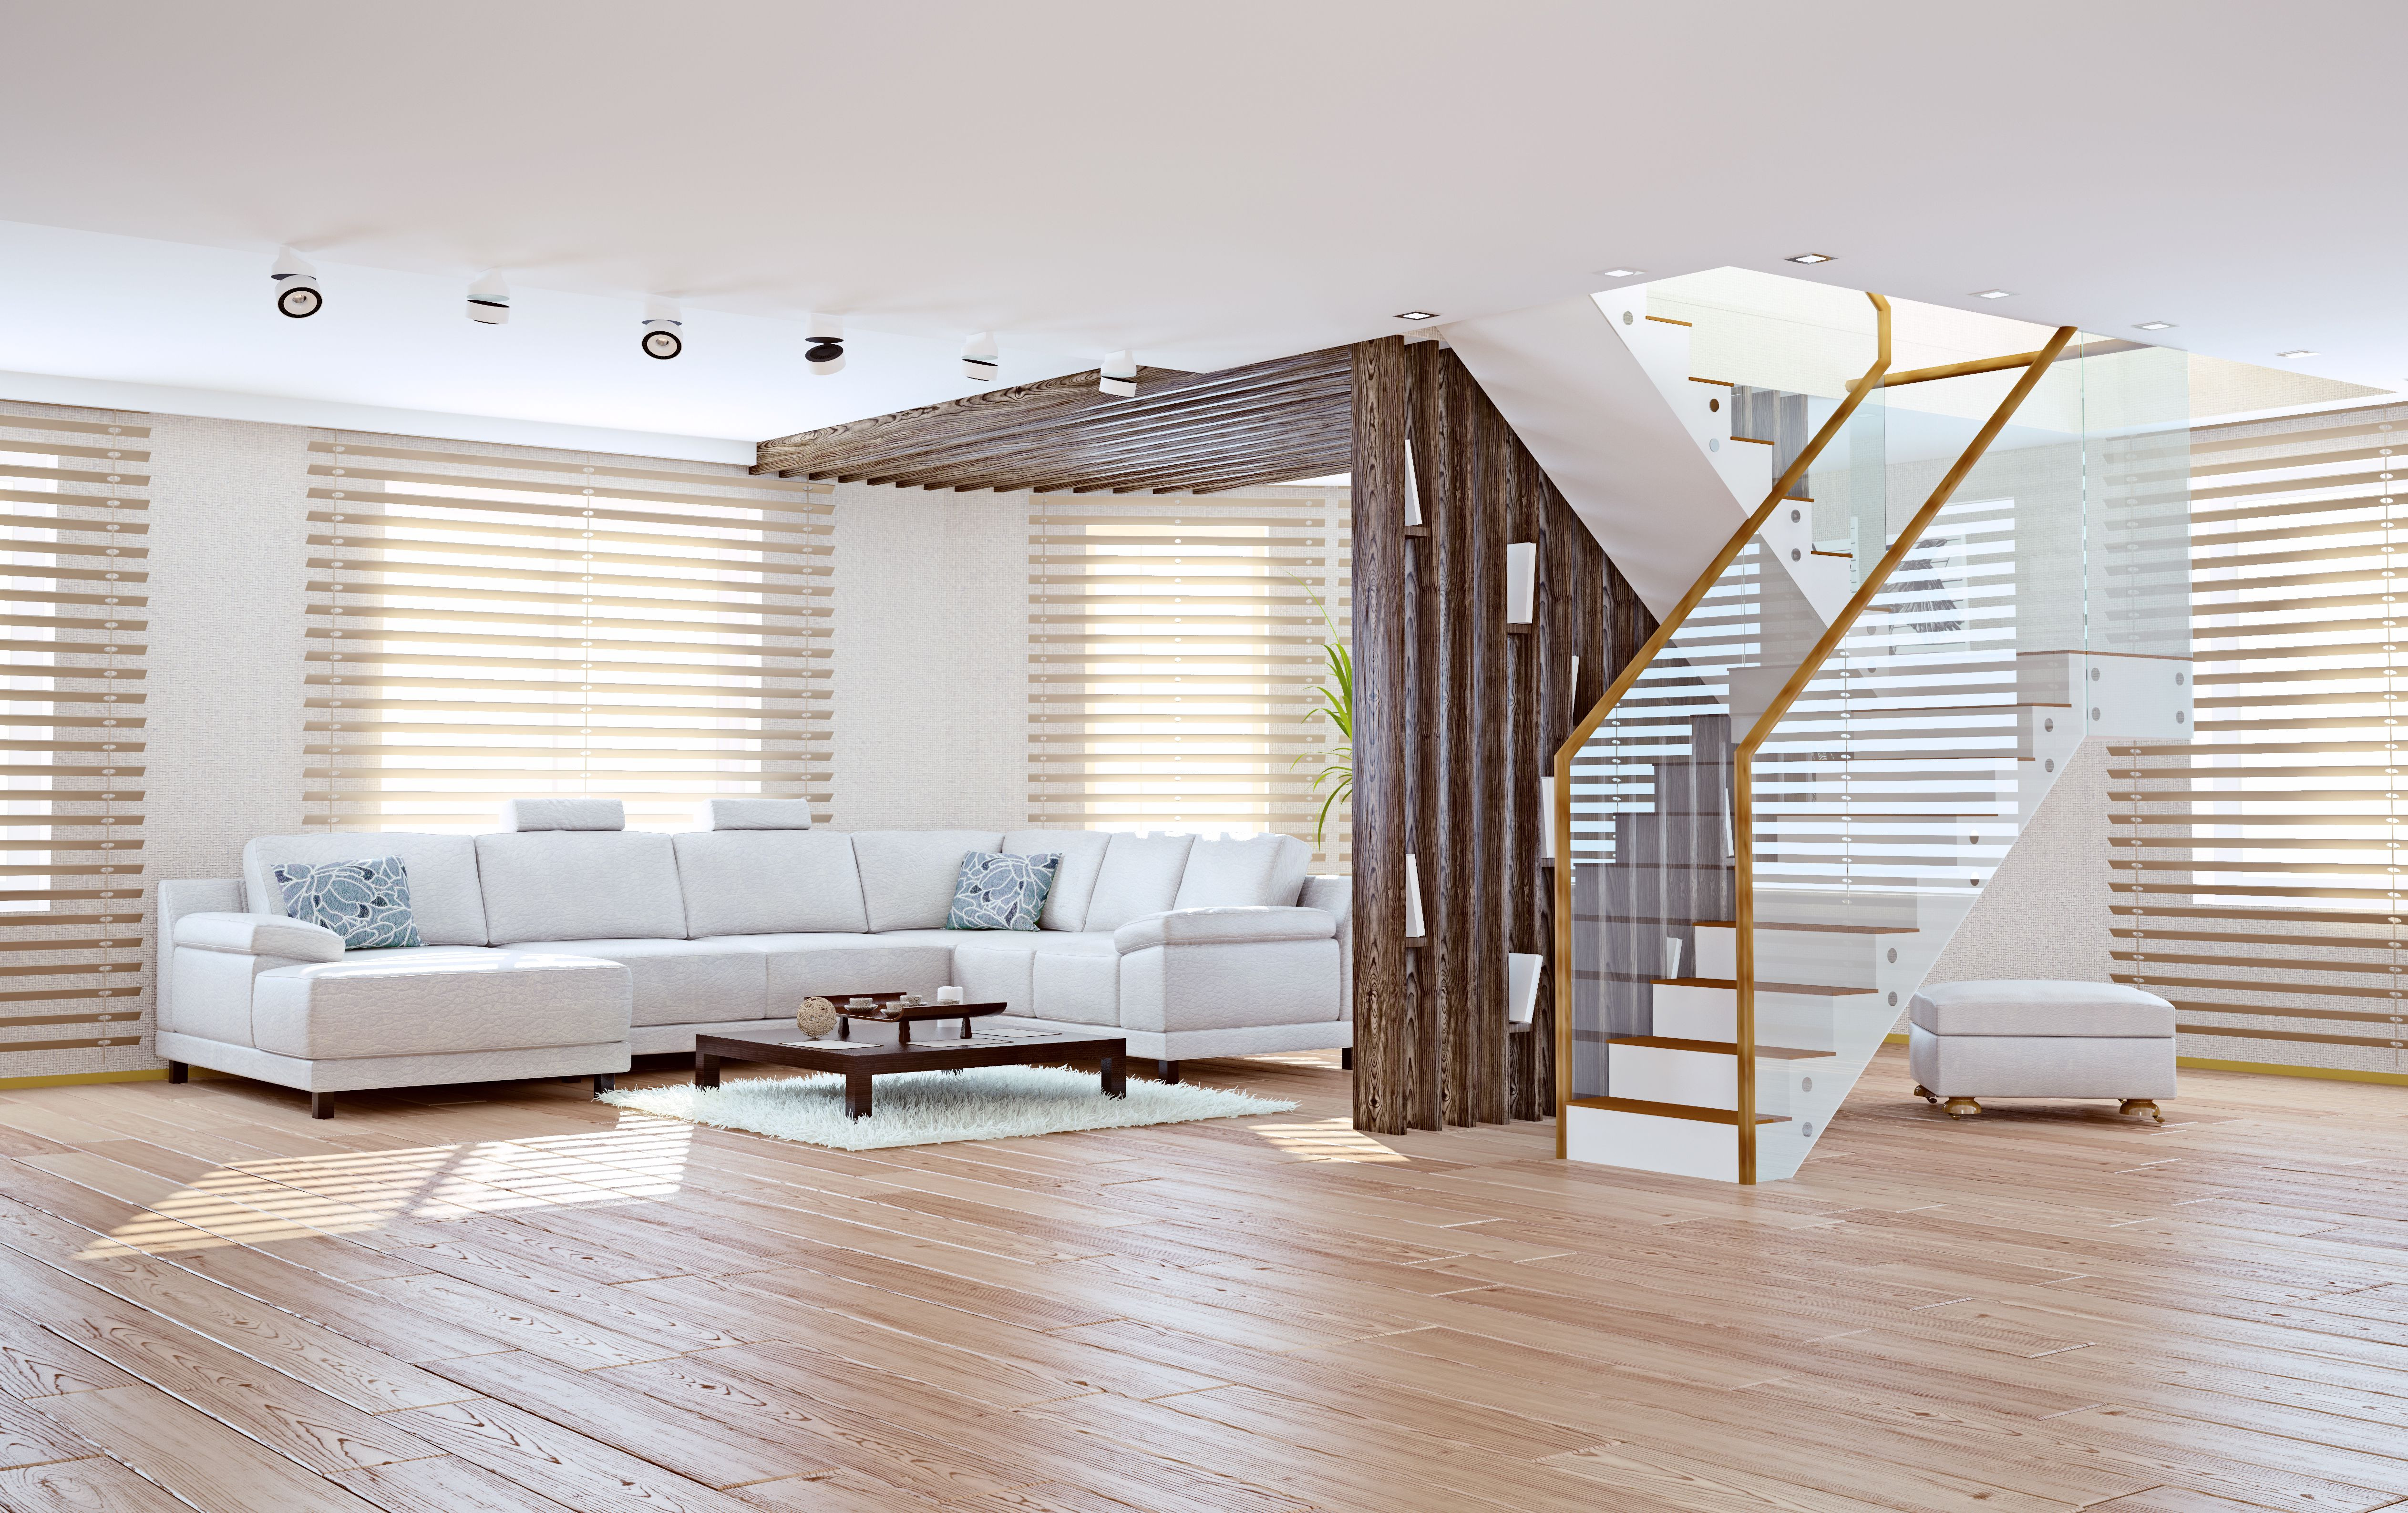 installing glue down hardwood floors of wide plank flooring myths and advice with basics of true wide plank flooring